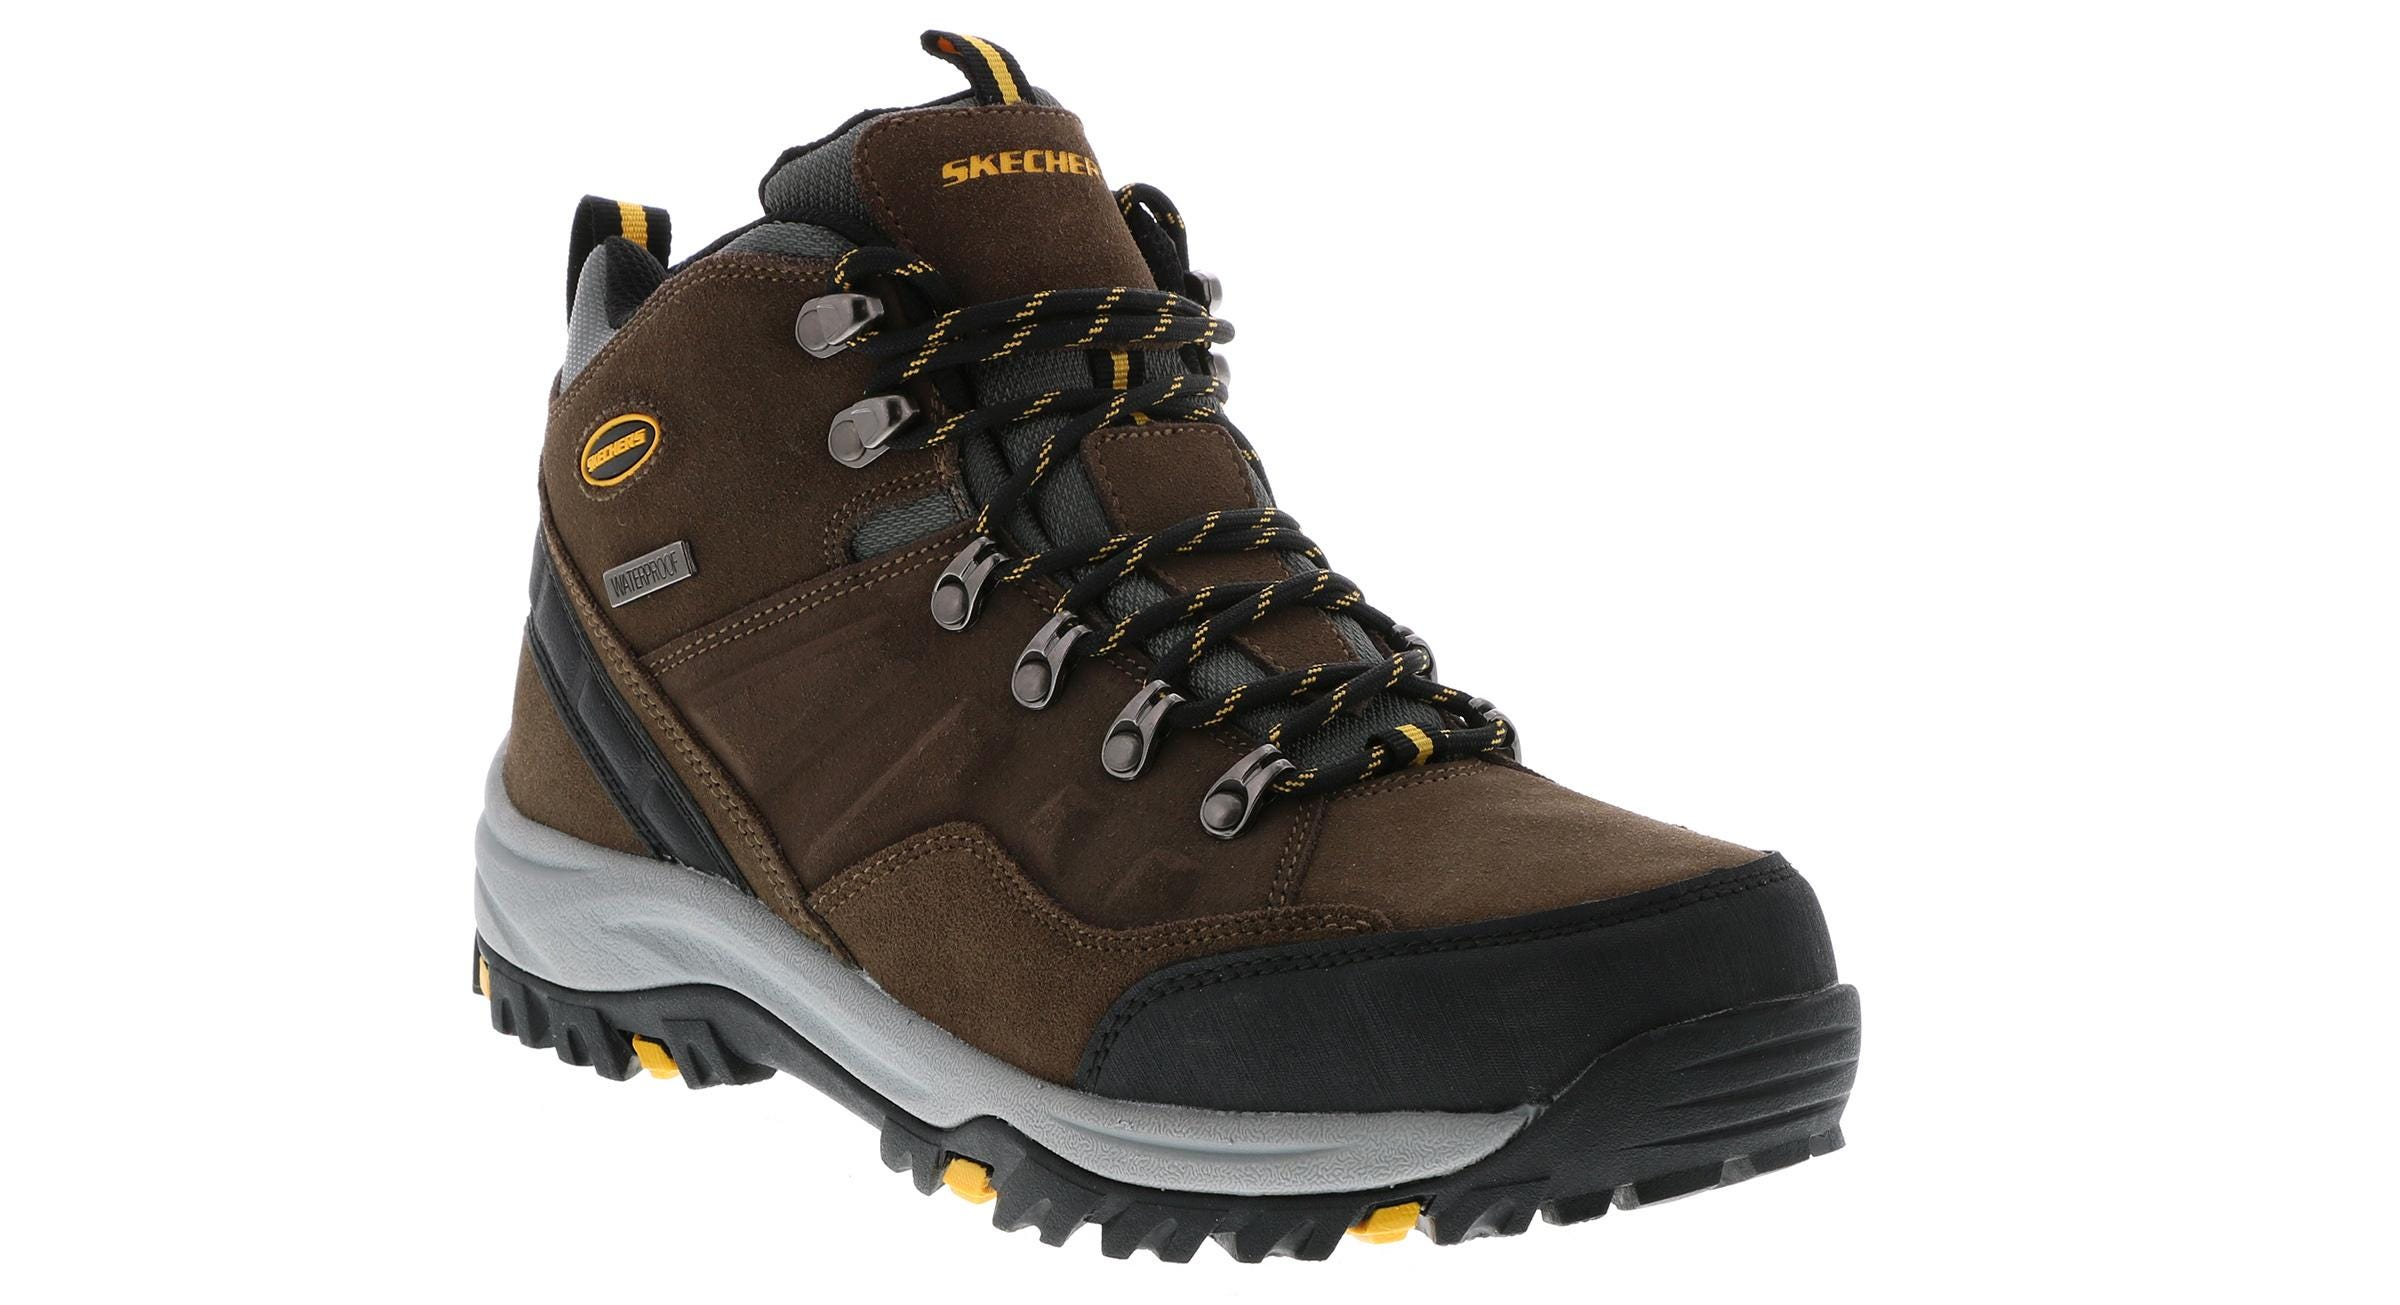 22a832a1ae4 Skechers Men's Relment-Pelmo Brown